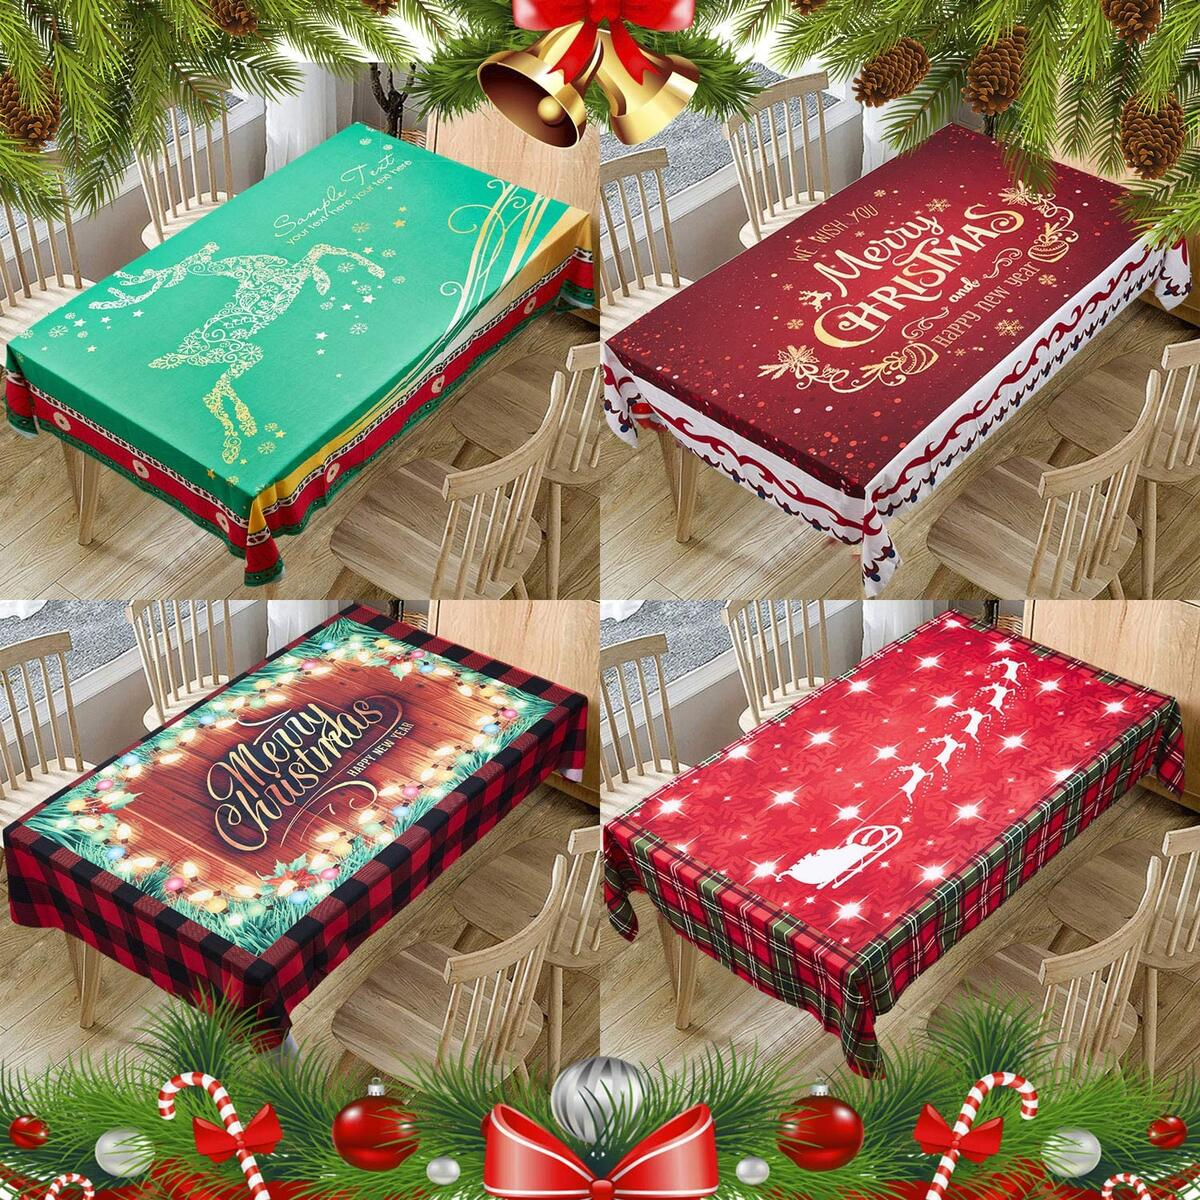 Christmas Printed Fabric Tablecloth,Oil-Proof and Waterproof Rectangle Table Cloth, Durable and Decorative Table Cover for Christmas and Thanksgiving (55